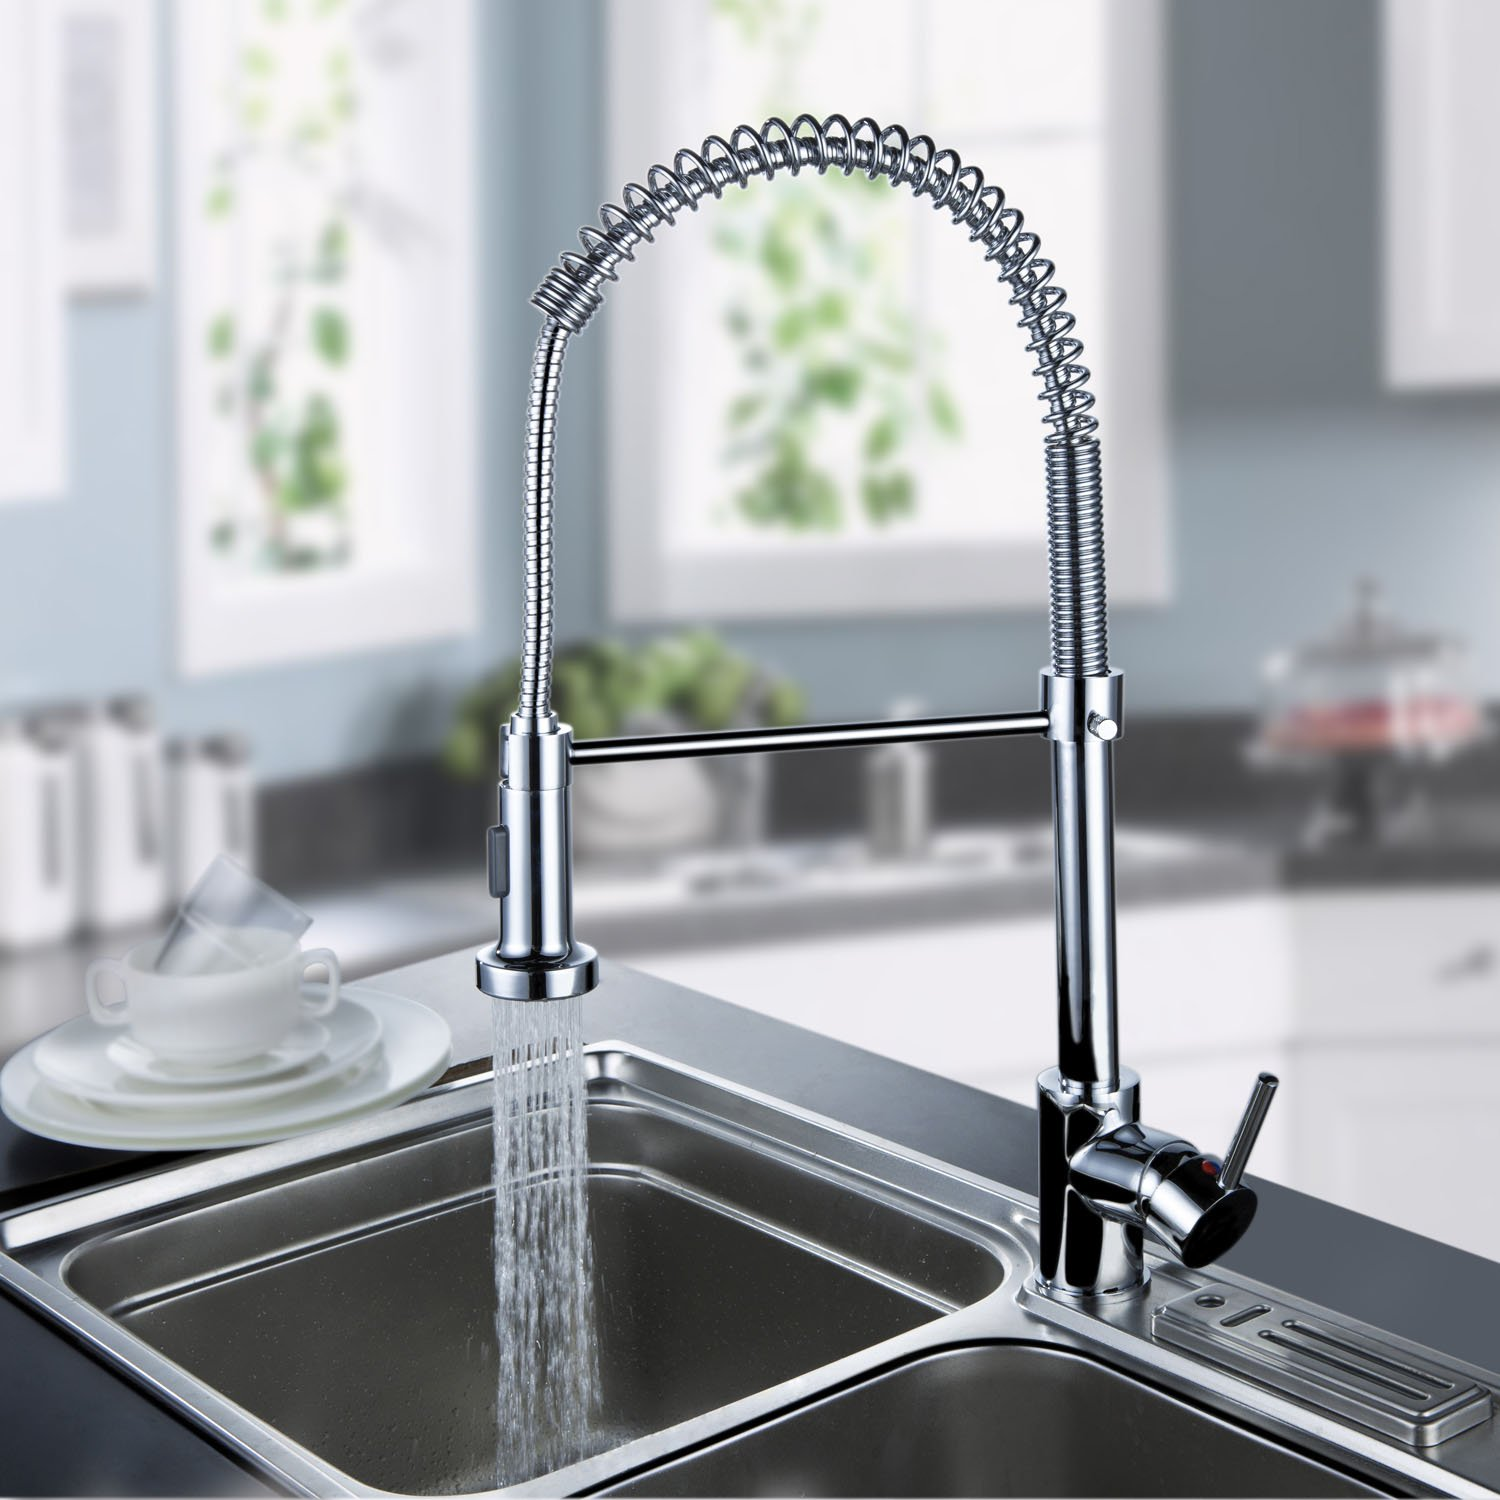 Lightinthebox Deck Mount Contemporary Spring Kitchen Sink Faucet Chrome Tall Curve Spout Bar Faucets Single Hole Kitchen Basin Faucets with Pull Out Led Sprayer 360 Degree Rotatable Swivel Mixer Taps Pull Down Spray Ceramic Valve Plumbing Fixtures